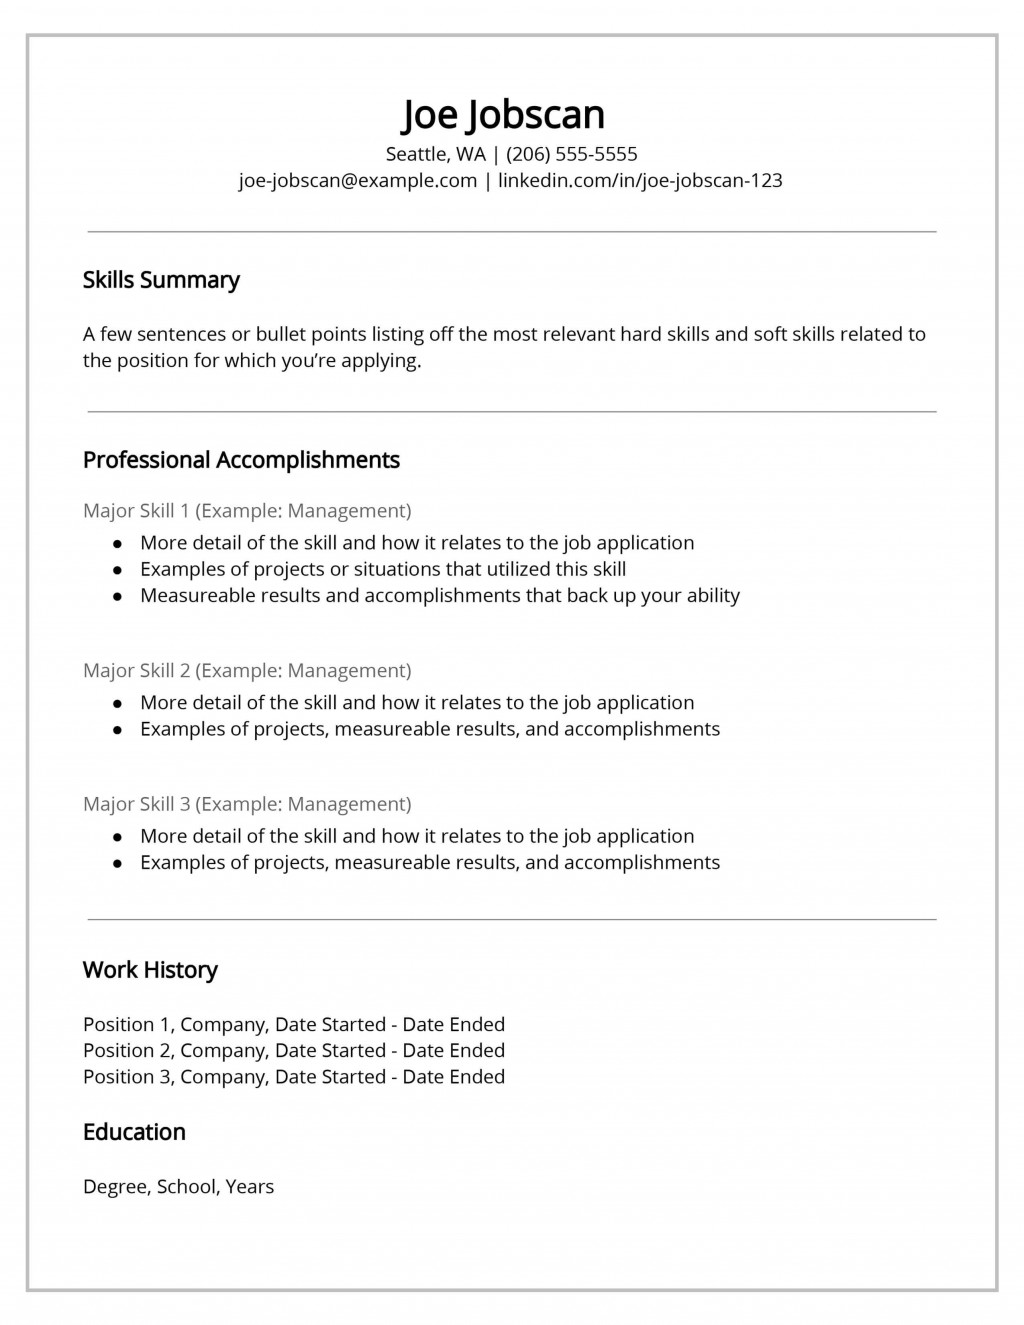 005 Impressive Simple Job Resume Template Concept  Templates Example DownloadLarge